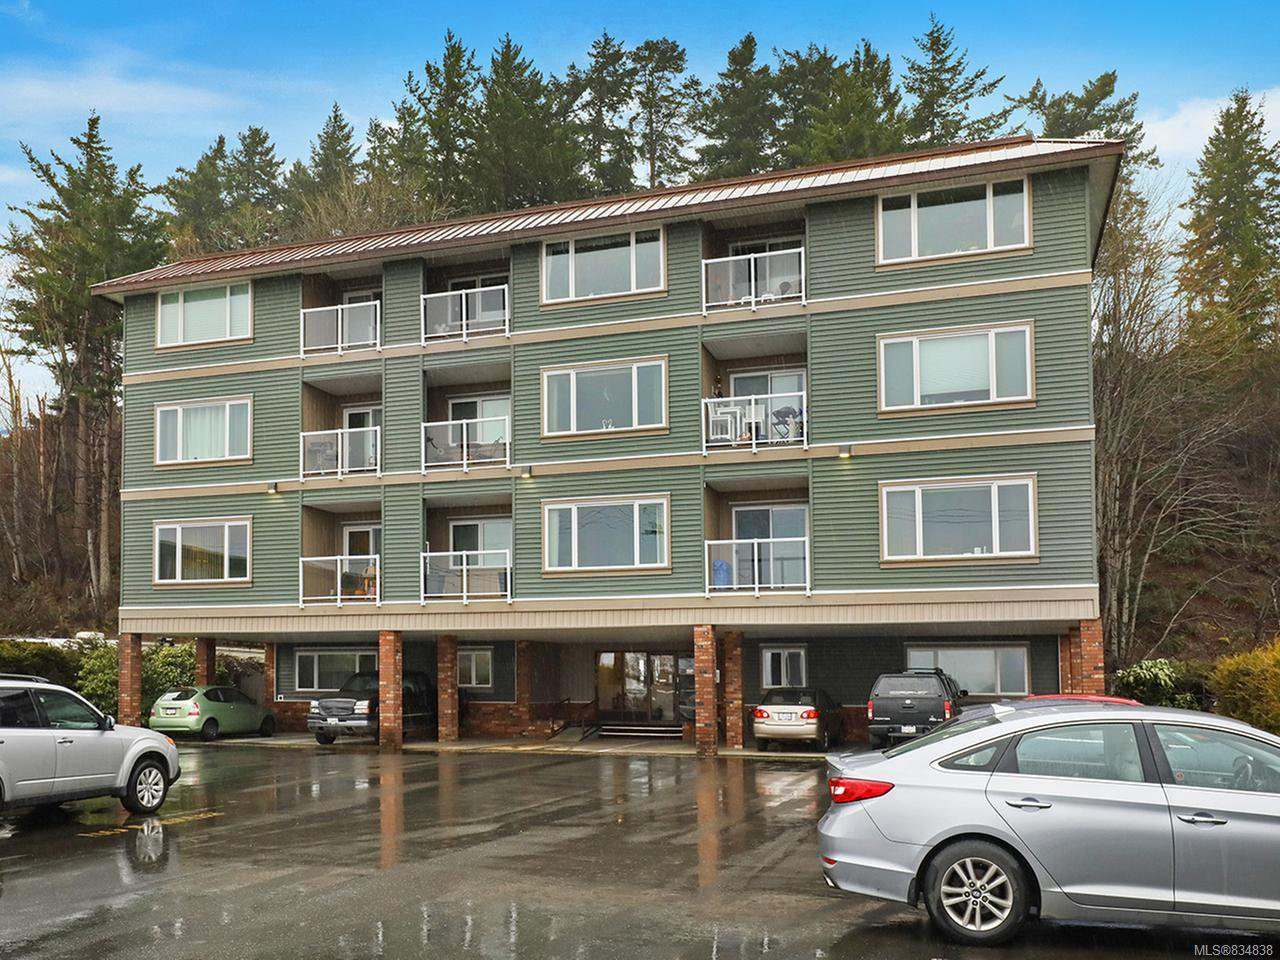 Photo 2: Photos: 301 894 S Island Hwy in CAMPBELL RIVER: CR Campbell River Central Condo for sale (Campbell River)  : MLS®# 834838